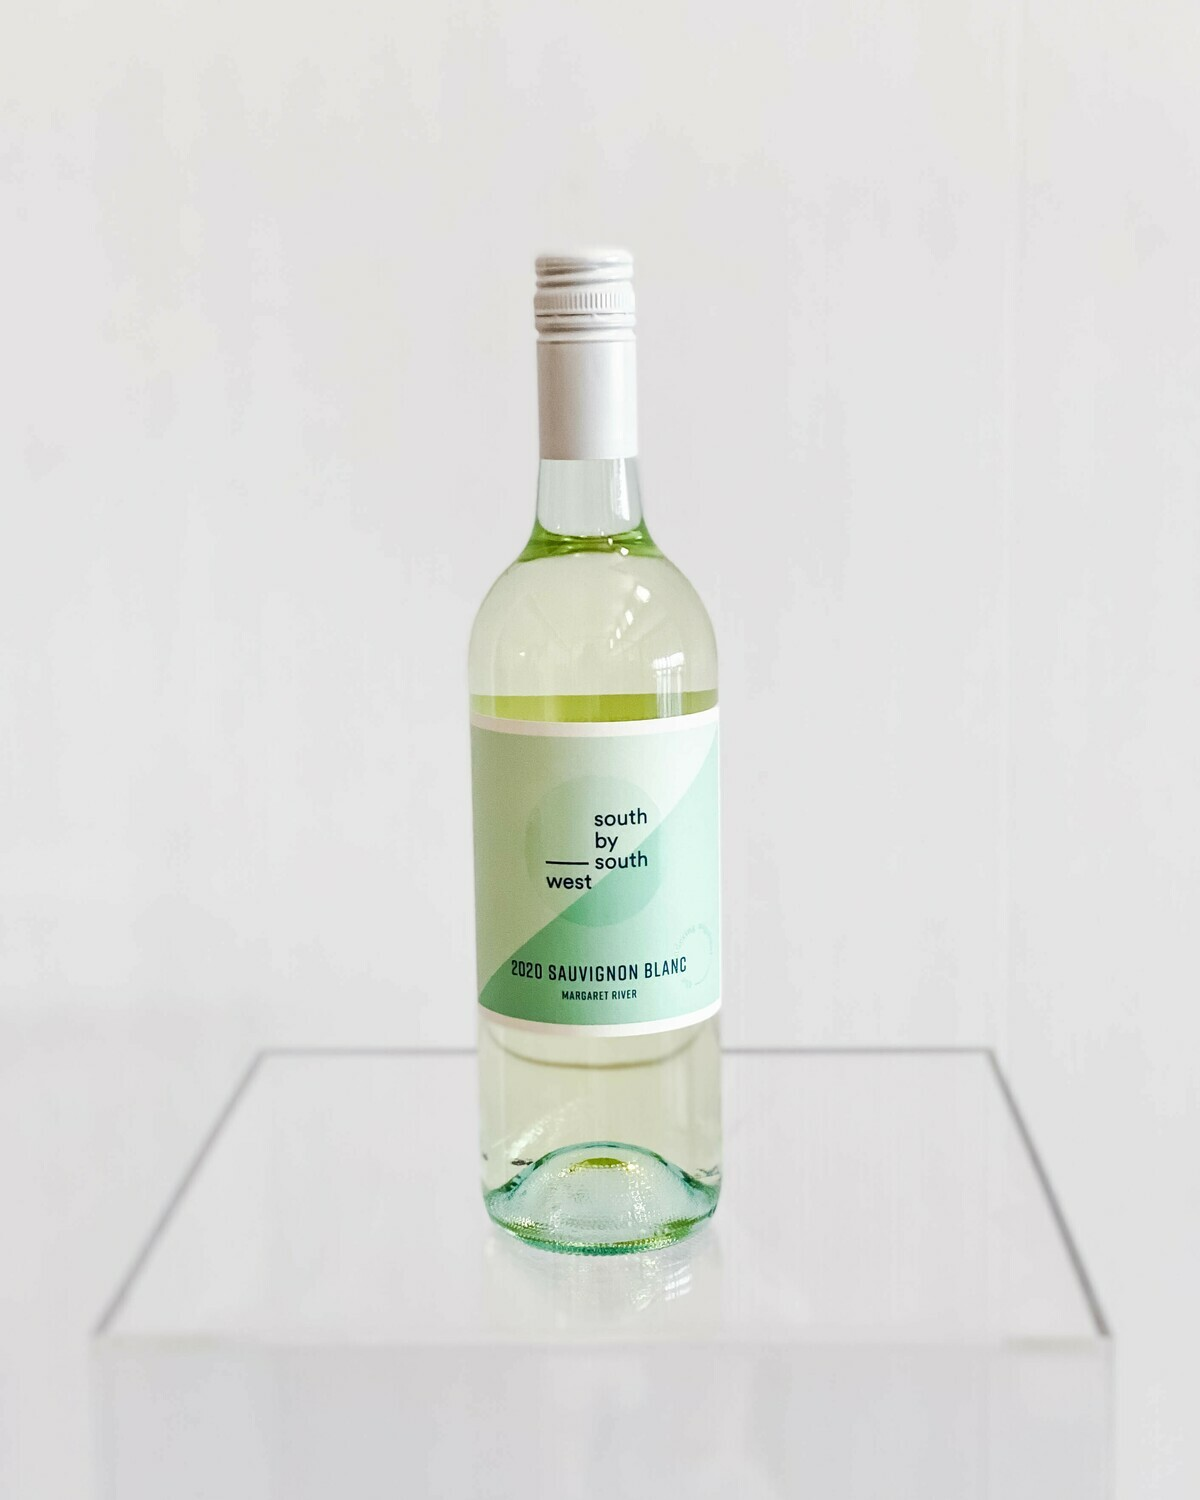 South by South West Sauvignon Blanc